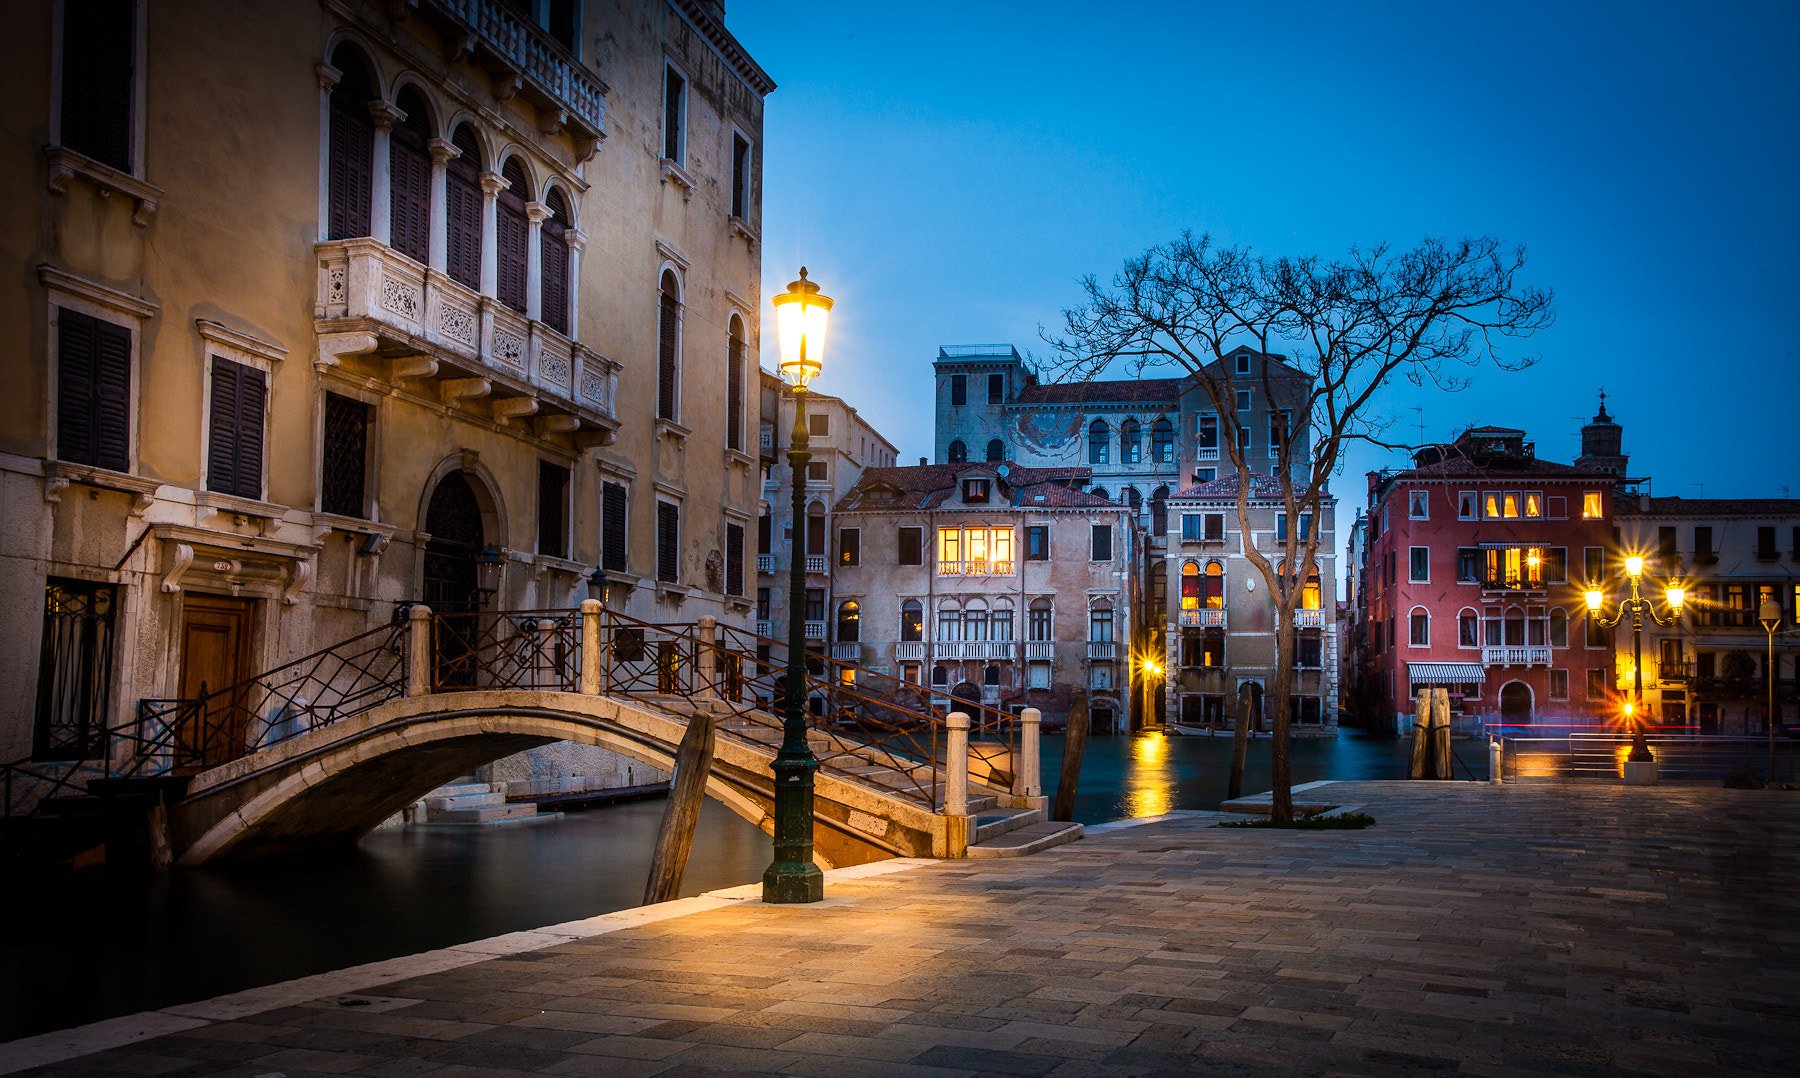 Photograph The Venise small Plaza by Ramelli Serge on 500px